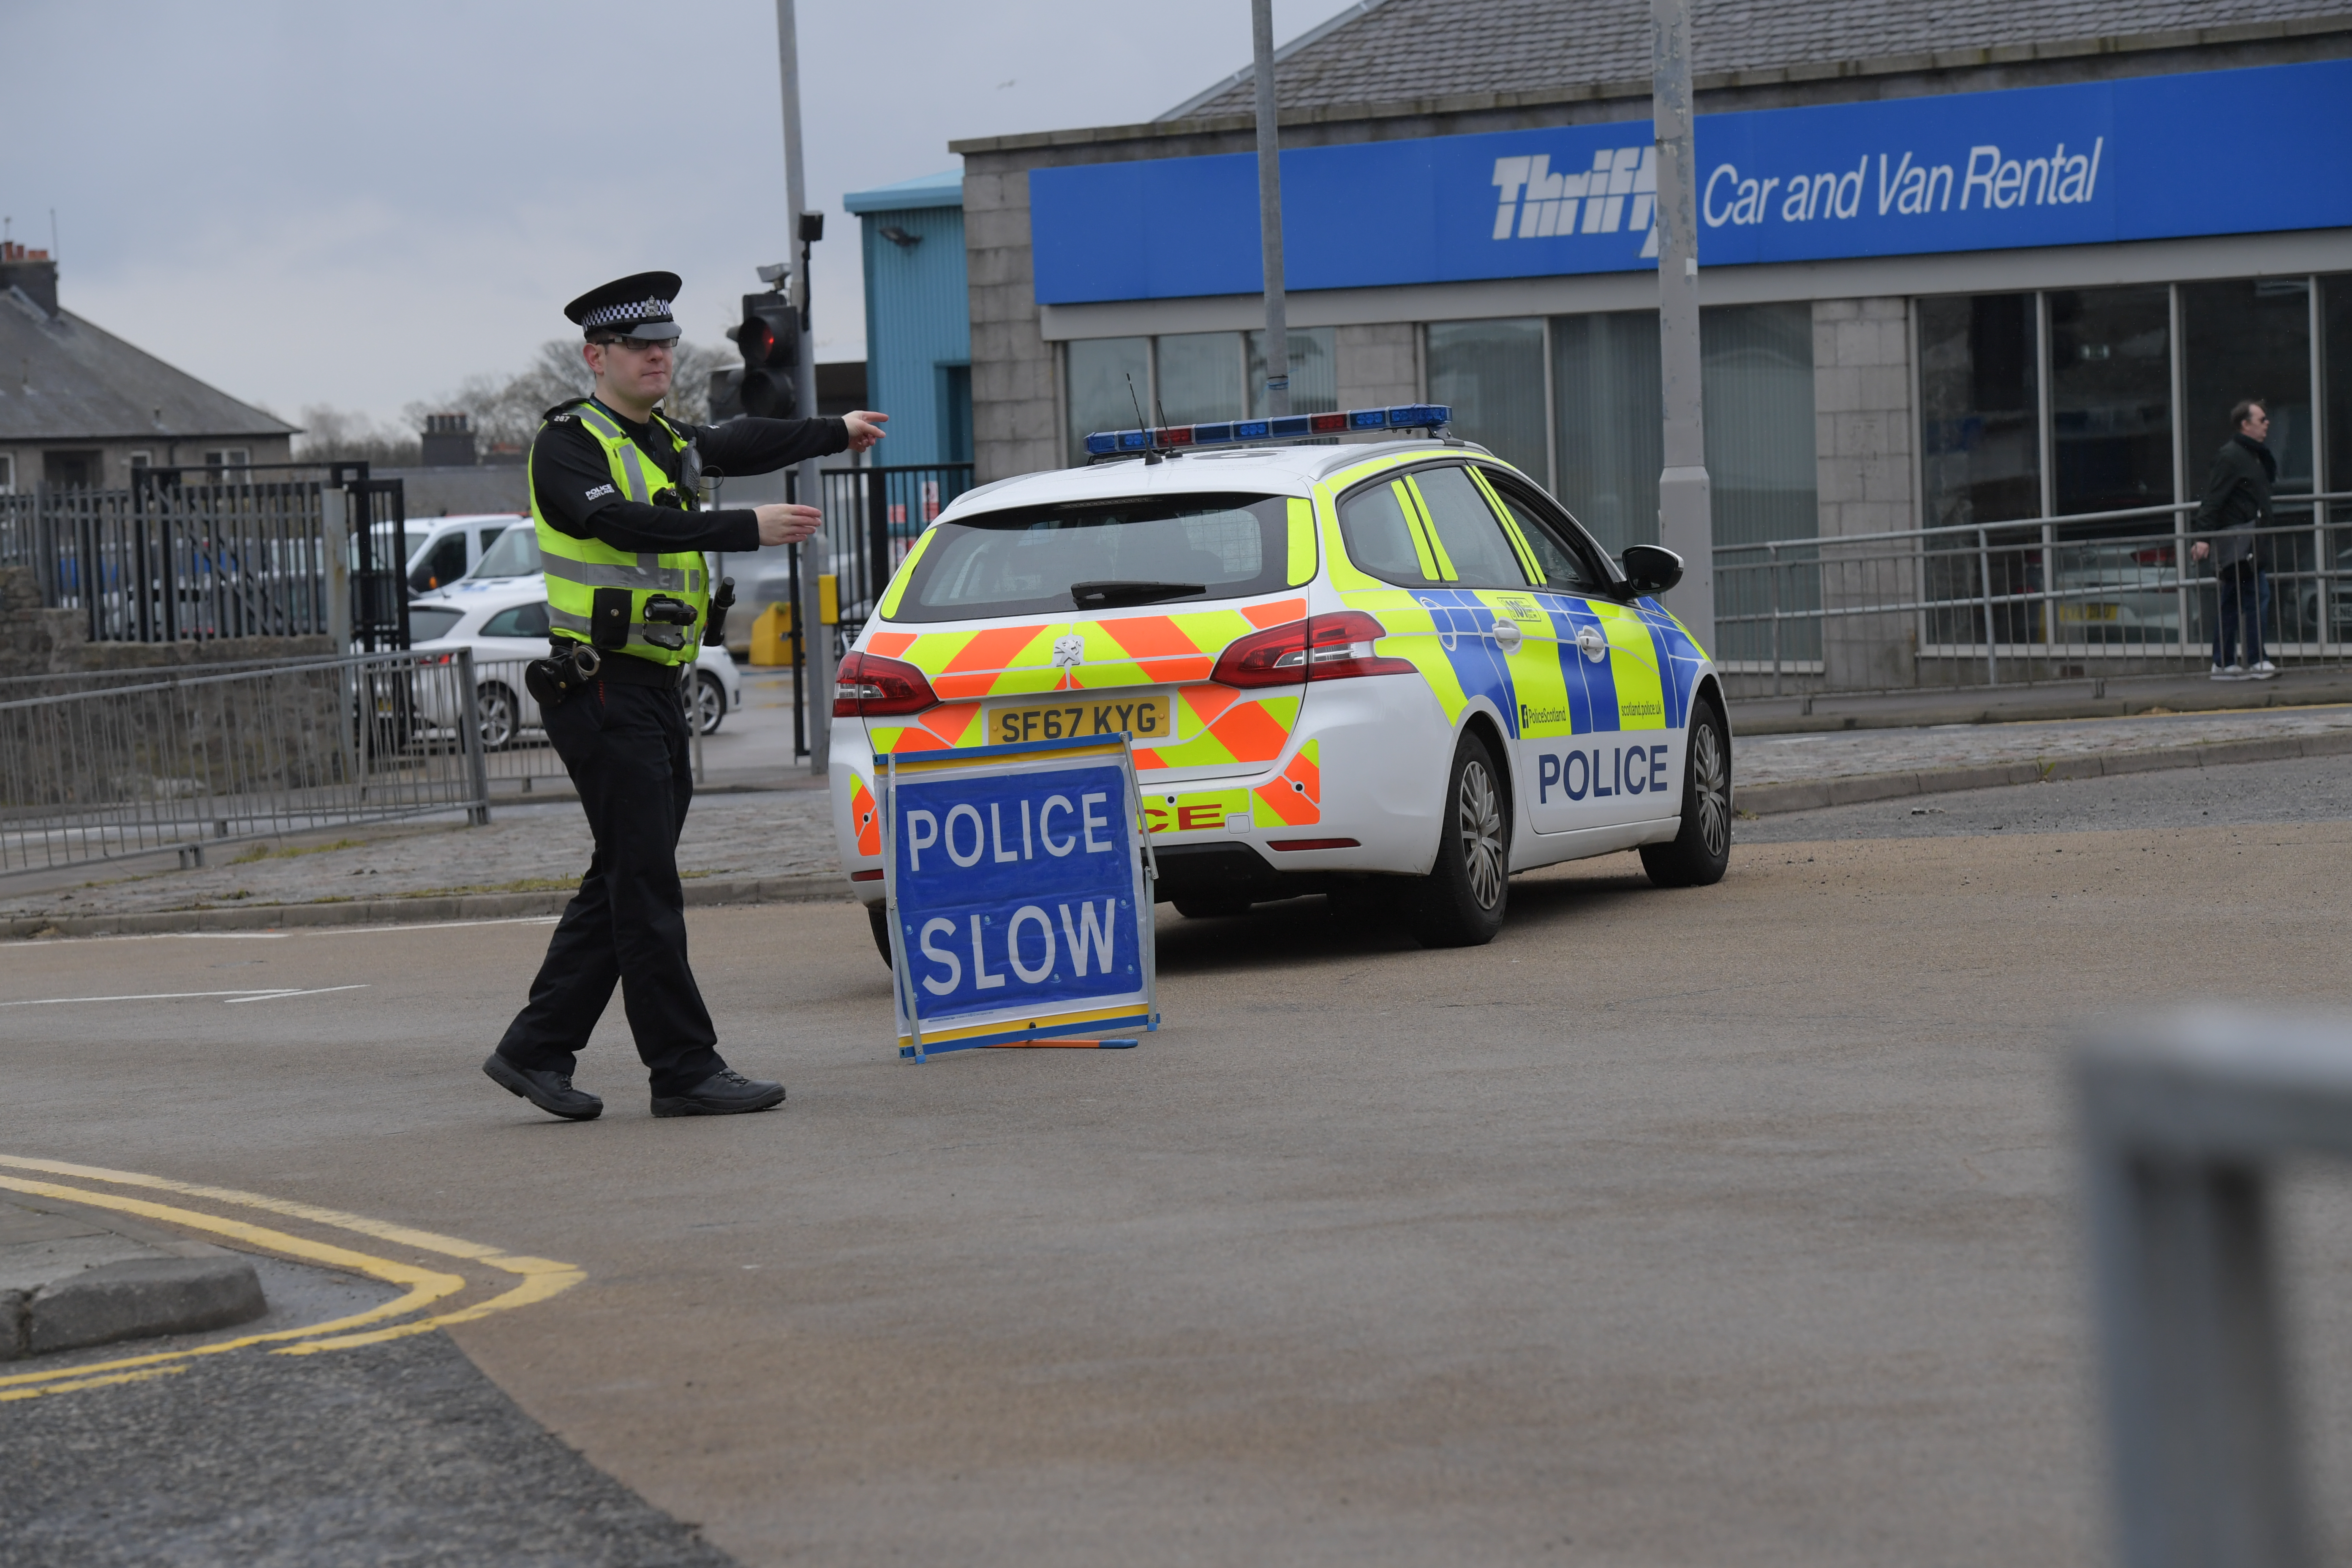 Police at the scene of the crash today